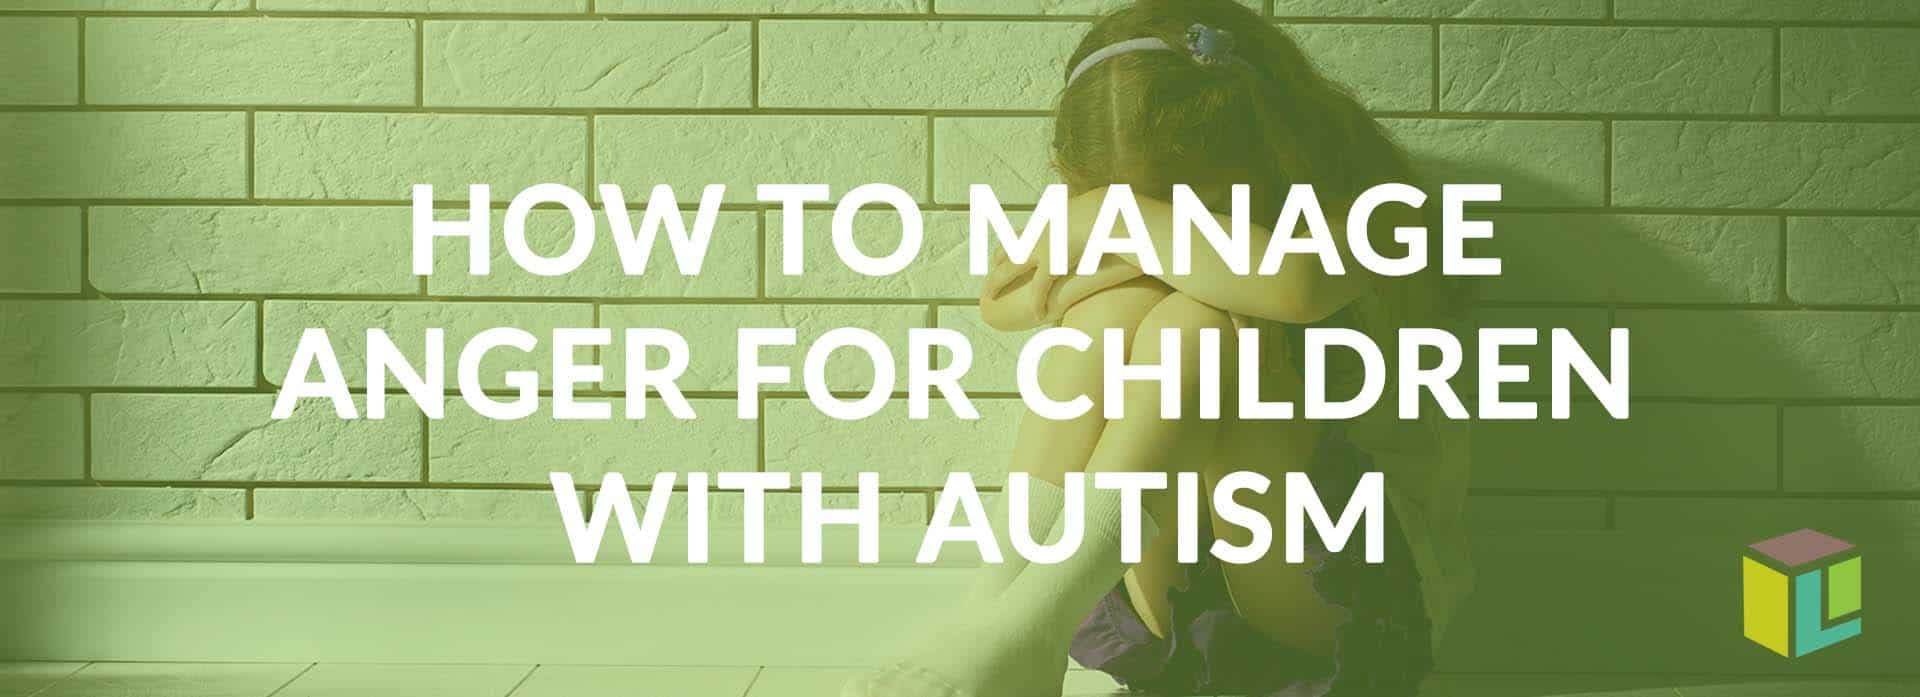 How To Manage Anger For Children With Autism